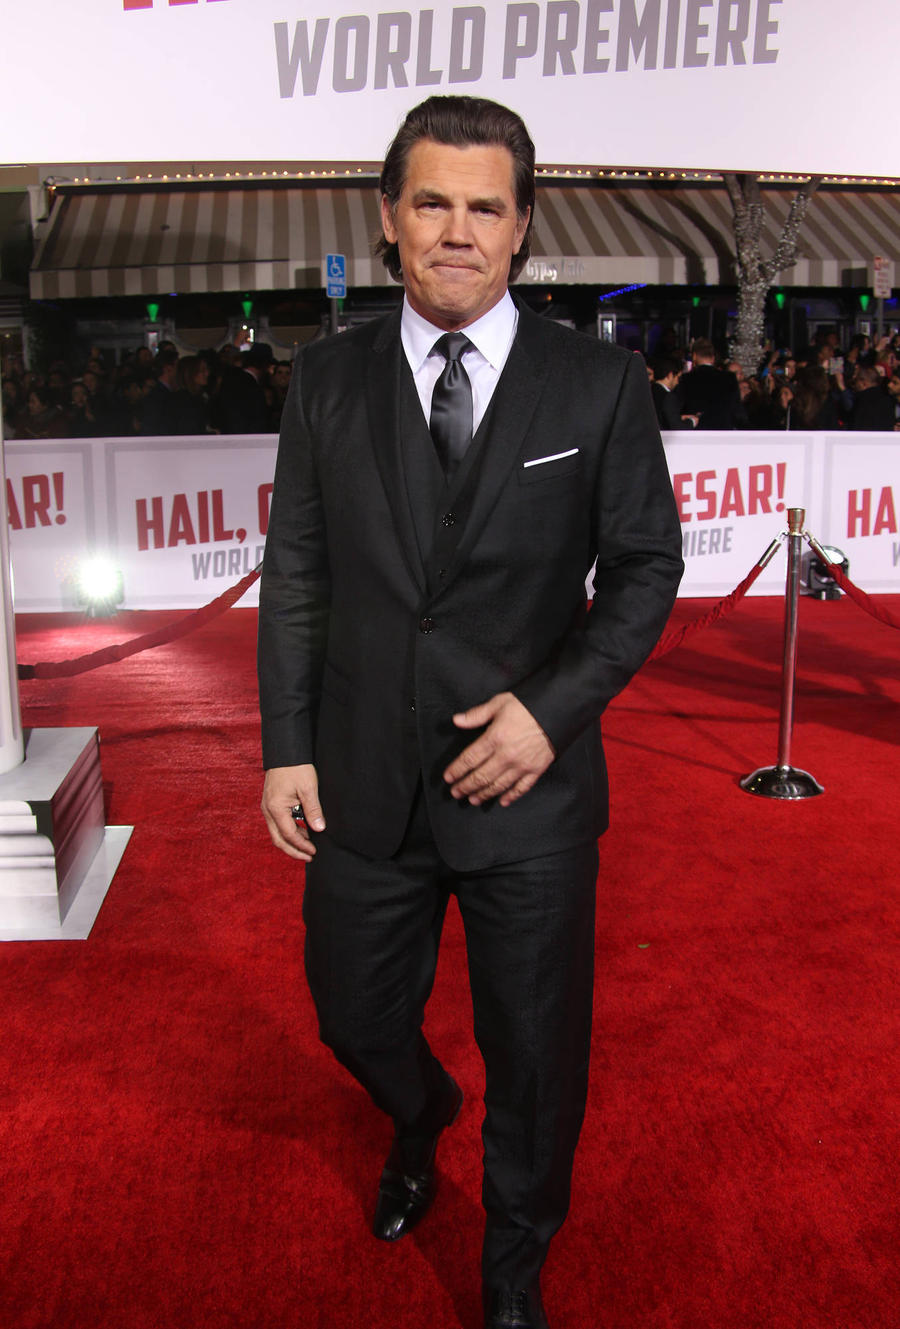 Josh Brolin Got Slap Happy With Clooney